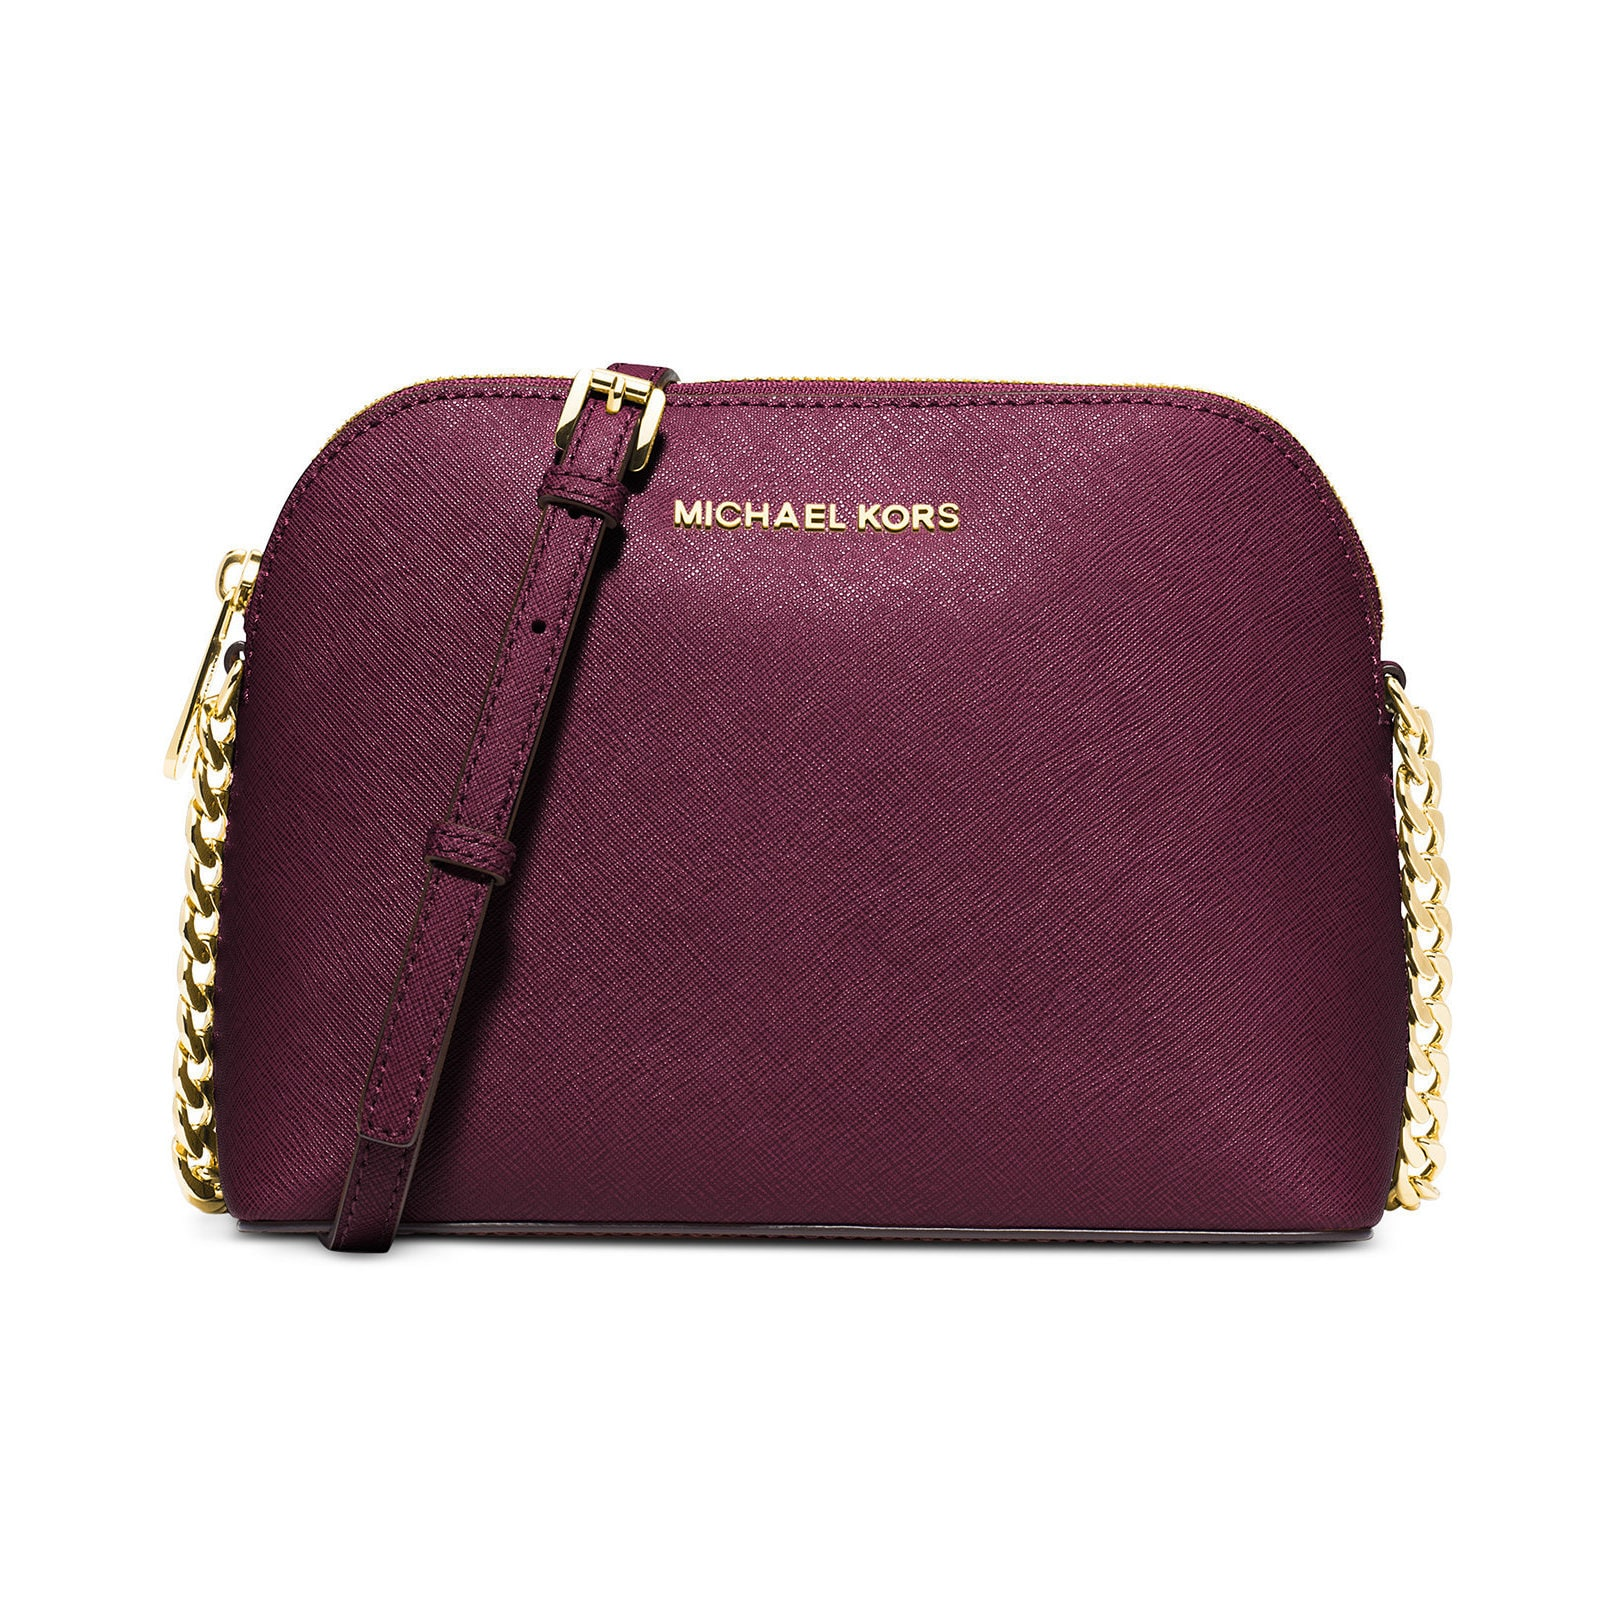 ae8d6ed3a8e1 Shop Michael Kors Cindy Plum Leather Large Dome Crossbody Bag - Free  Shipping Today - Overstock - 13330911